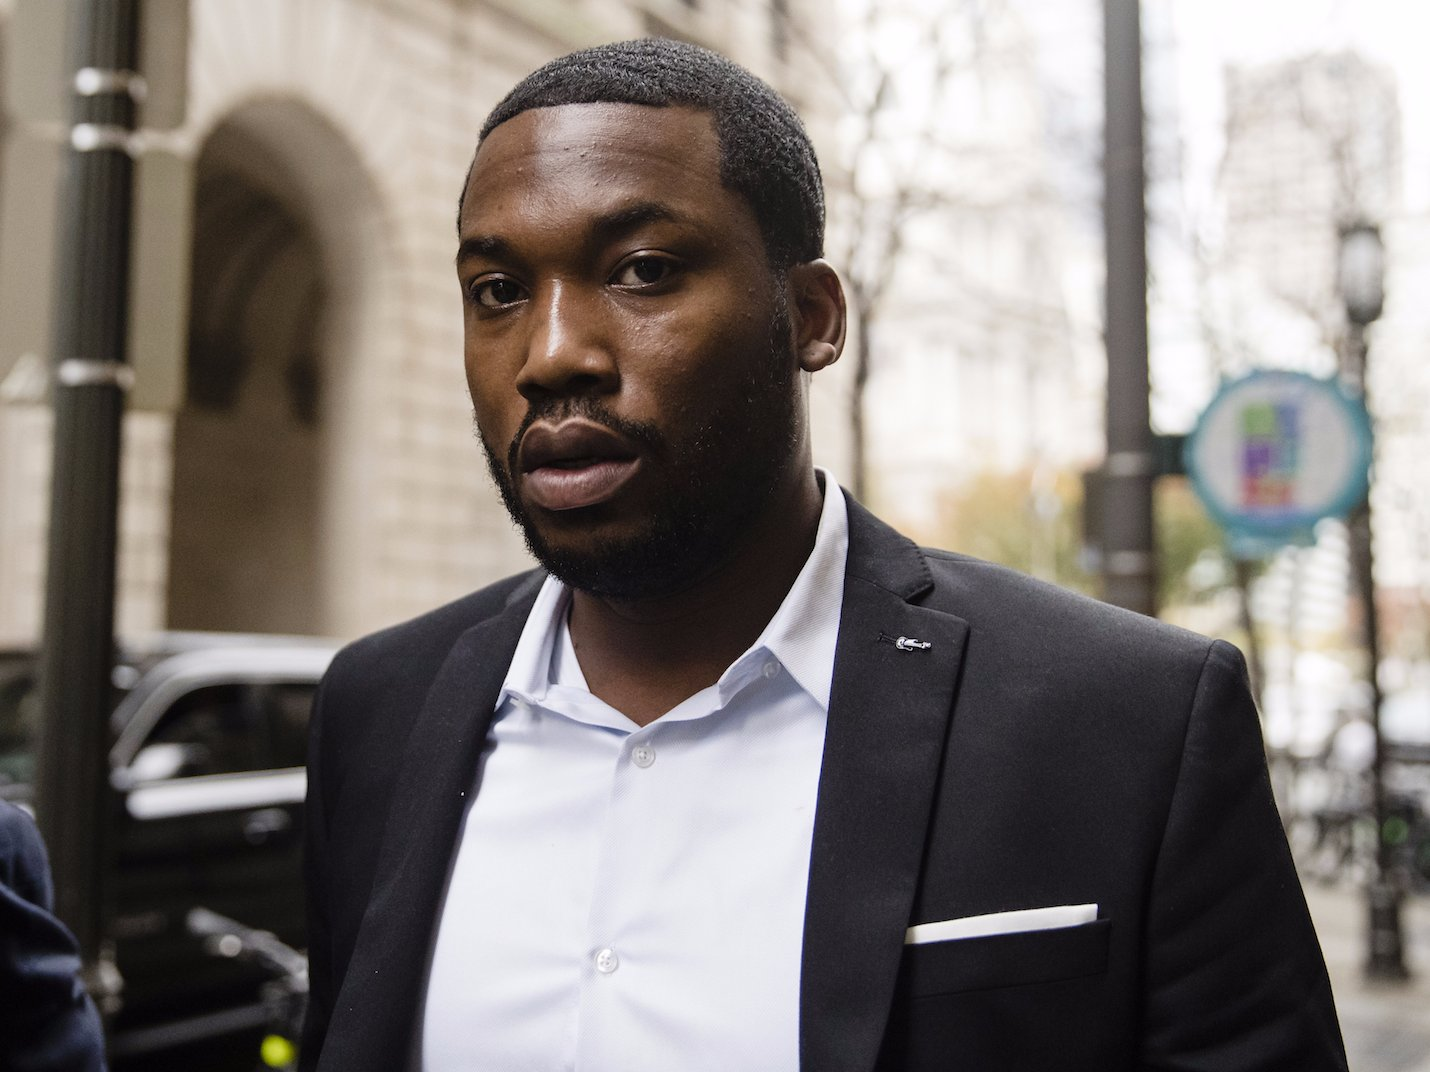 New Petition Calls for Governor to Reevaluate Meek Mill's Prison Sentence